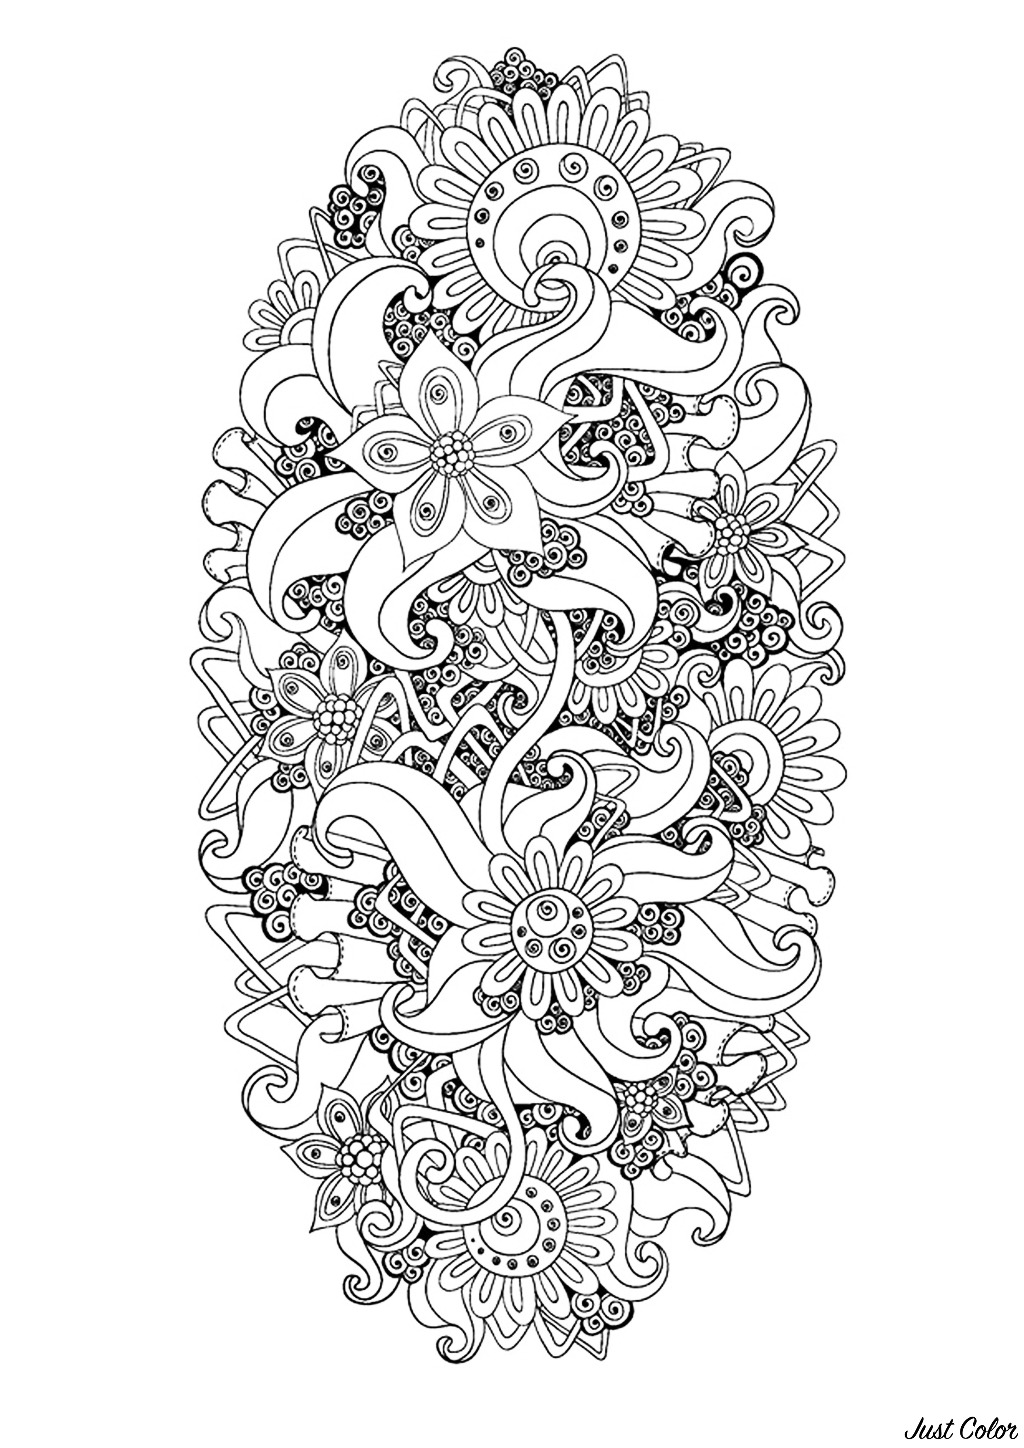 Zen & Anti-stress Coloring page : Abstract pattern inspired by flowers : n°9